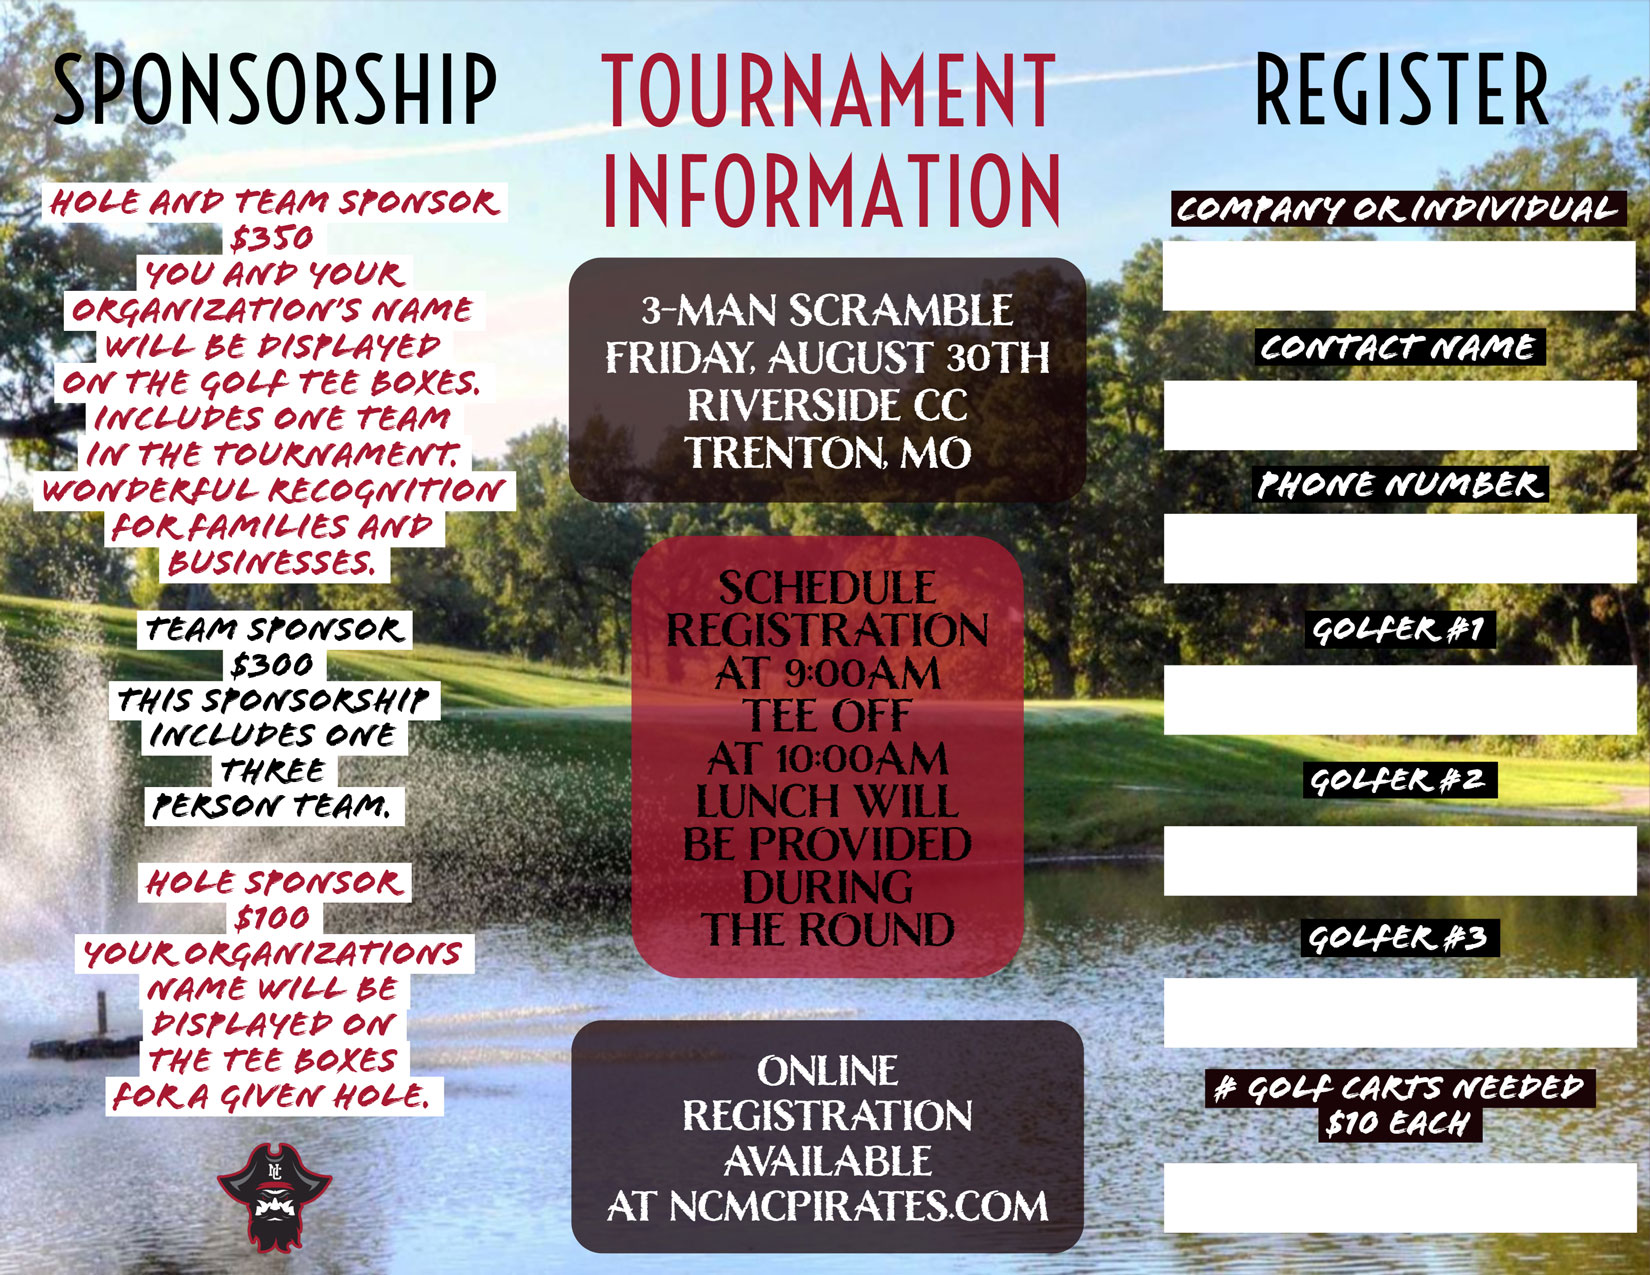 Information about the Pirates Fundraiser Golf Tournament.